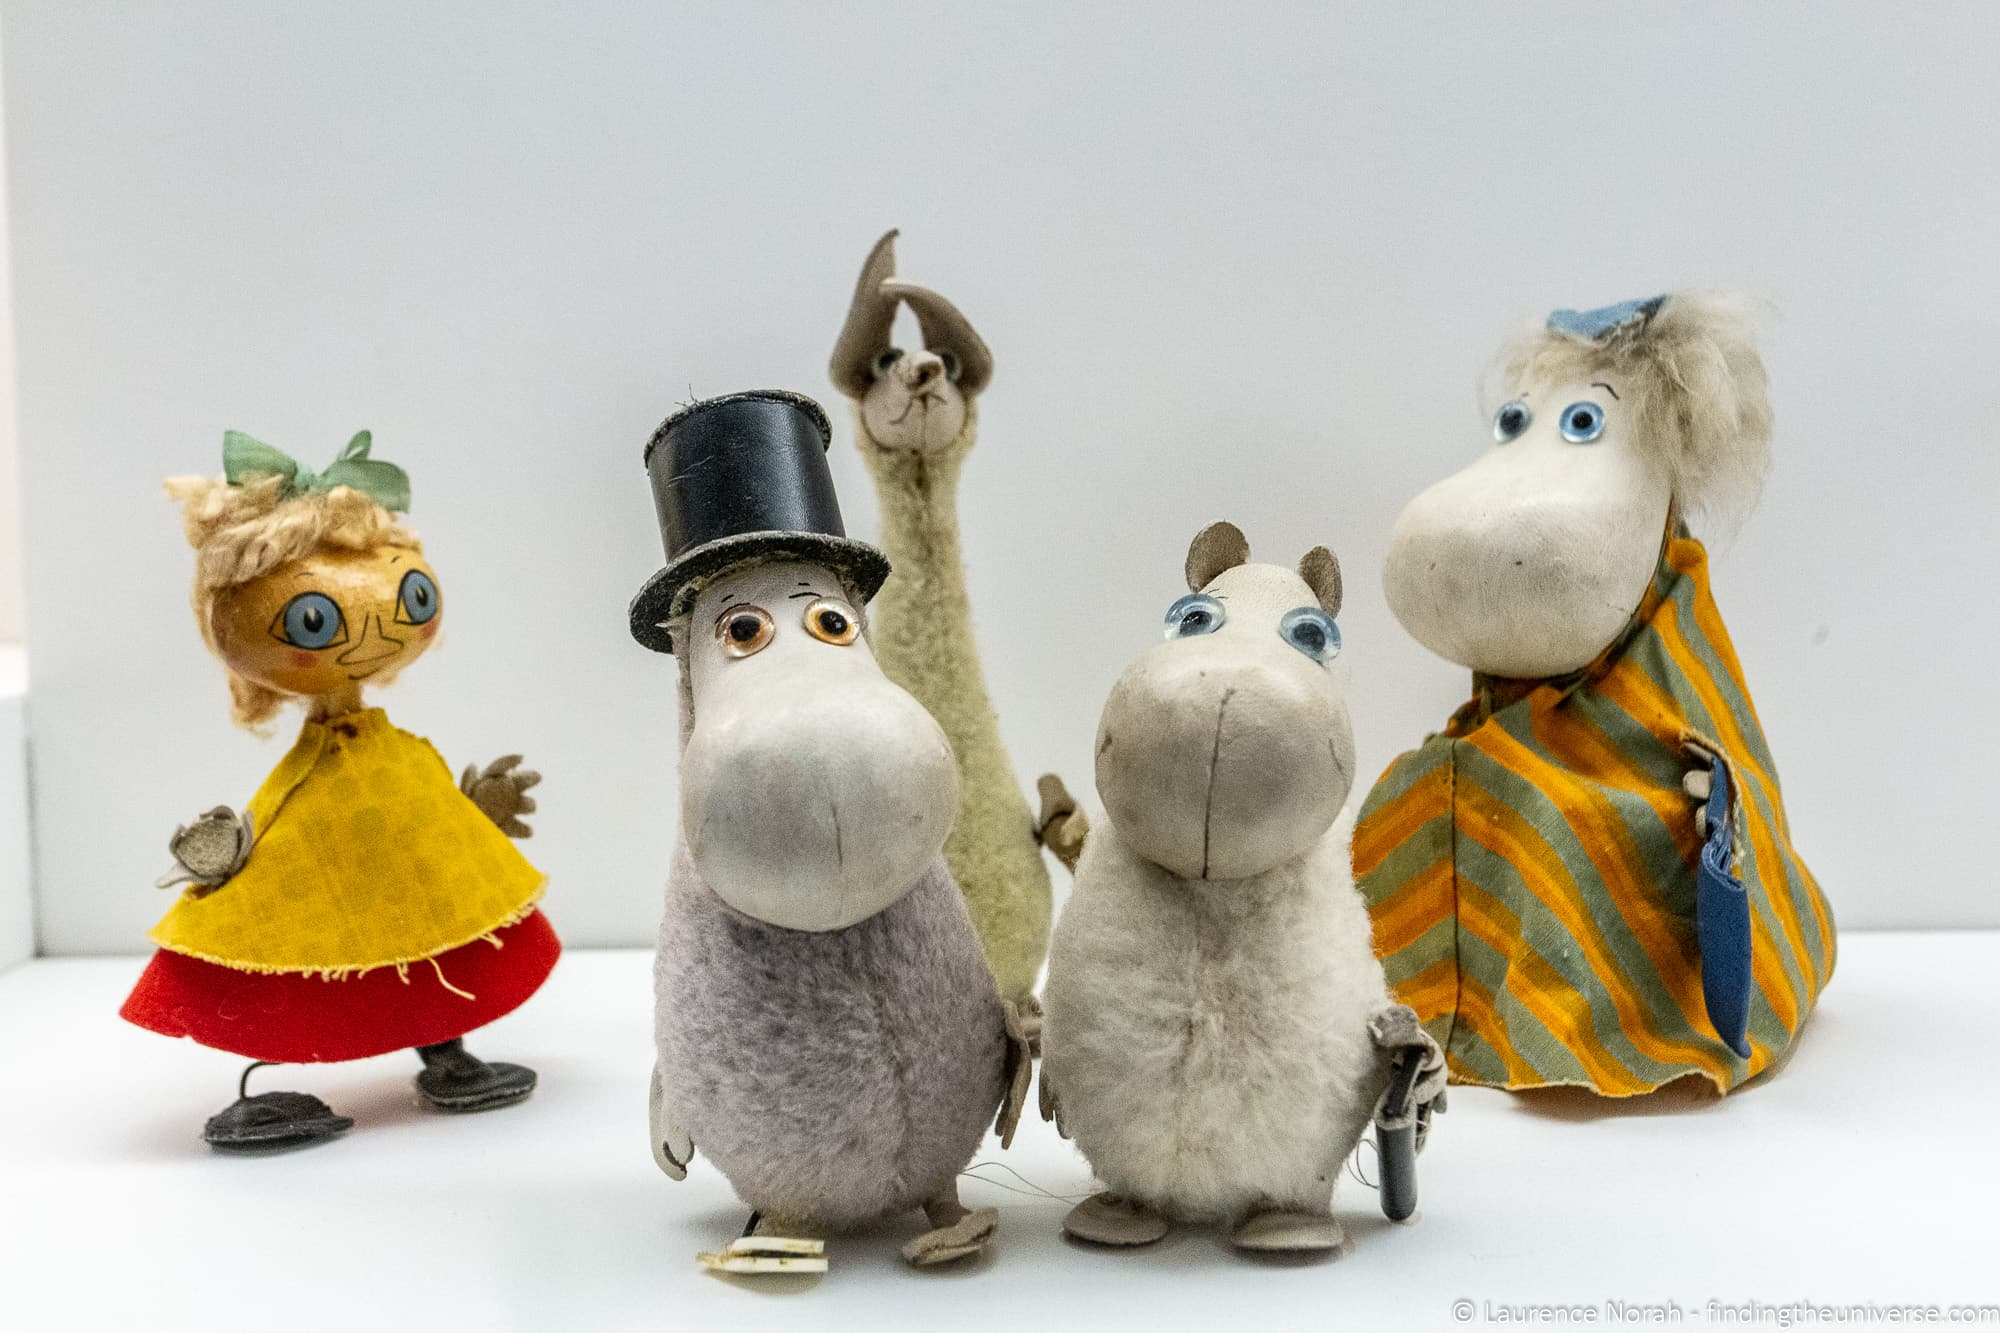 Moomins National Museum of Finland